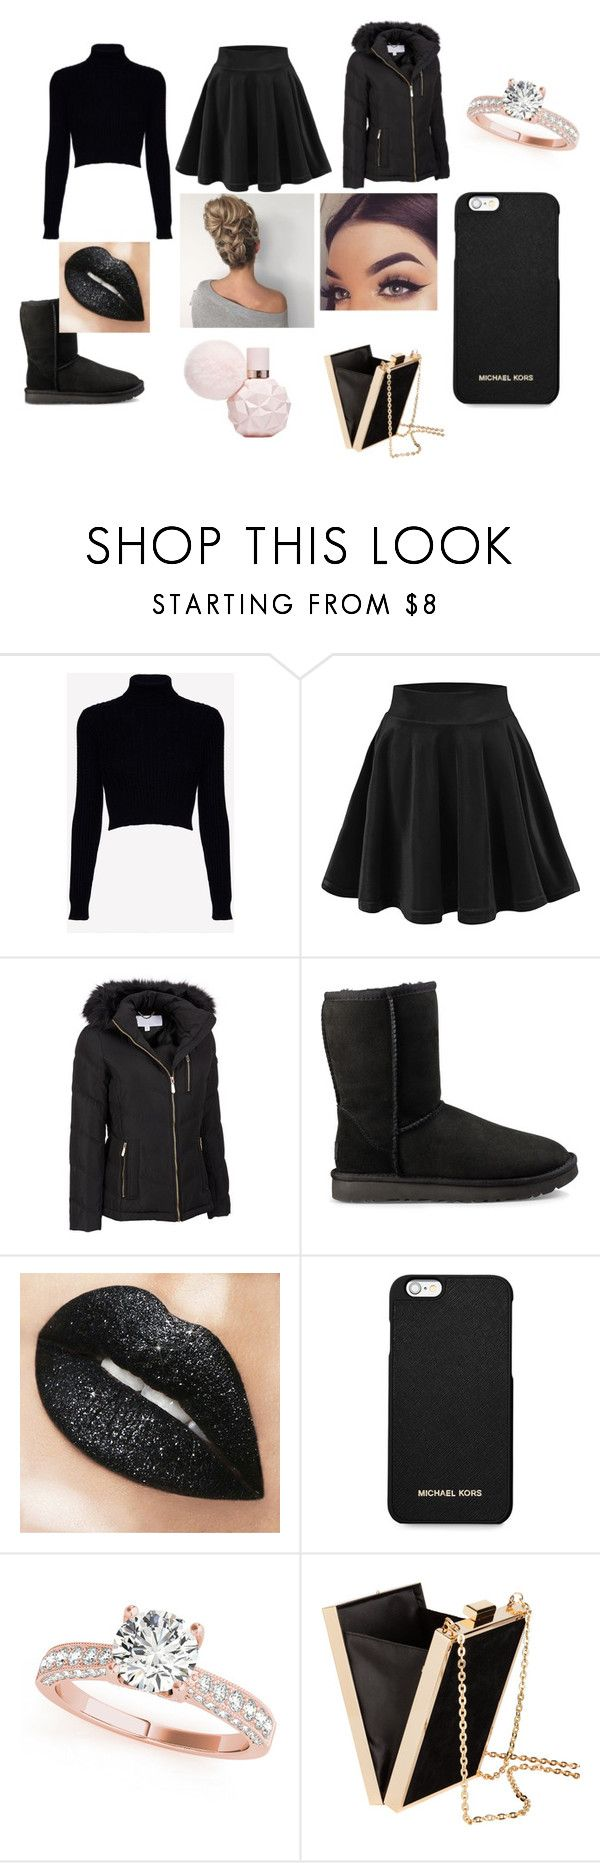 """""""Cold Glam"""" by dylann-samuels ❤ liked on Polyvore featuring Jack Wills, Wilsons Leather, UGG, MICHAEL Michael Kors and plus size clothing"""